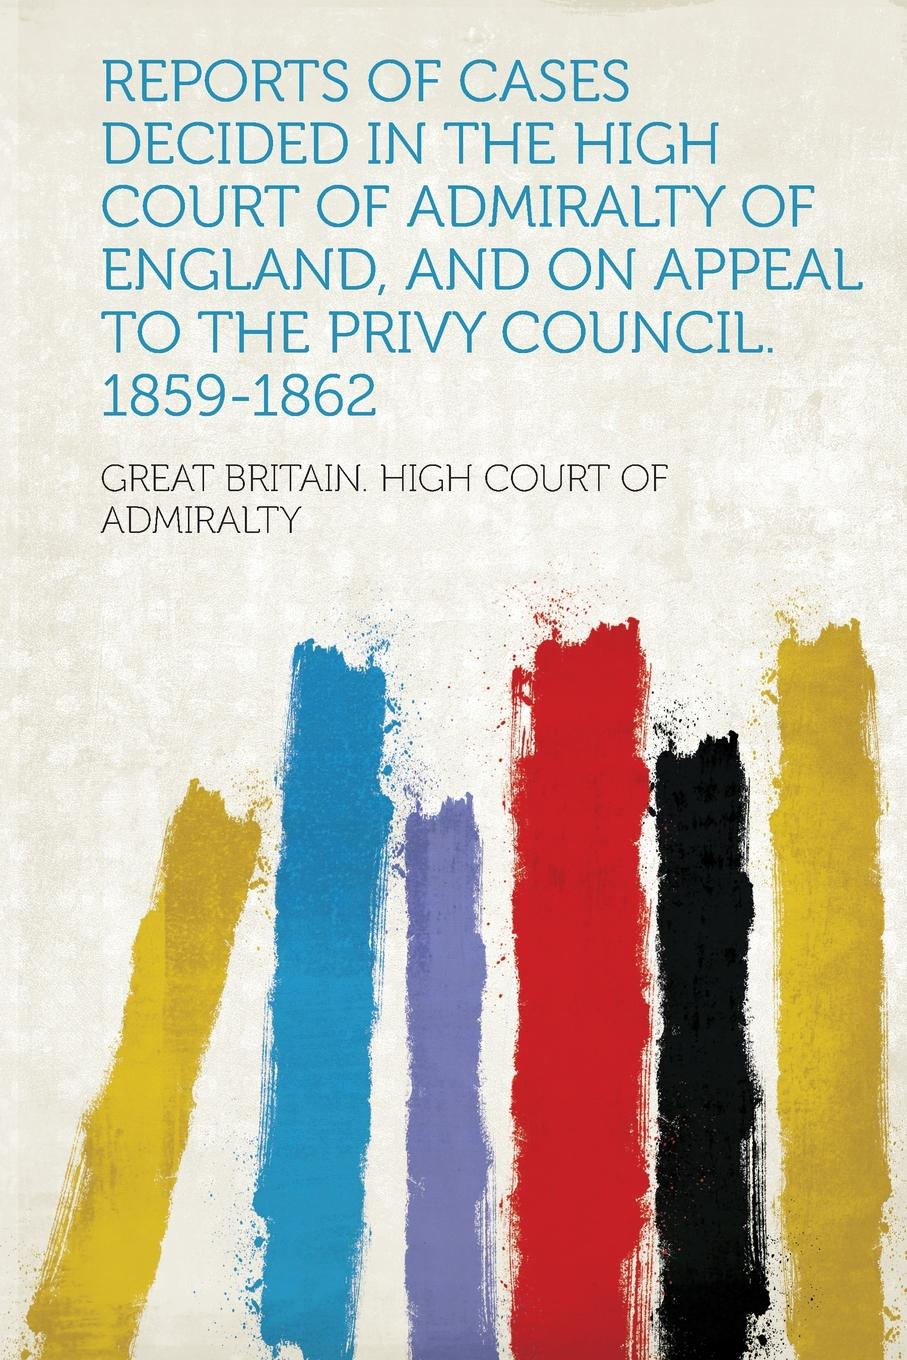 Great Britain. High Court of Admiralty Reports of Cases Decided in the High Court of Admiralty of England, and on Appeal to the Privy Council. 1859-1862